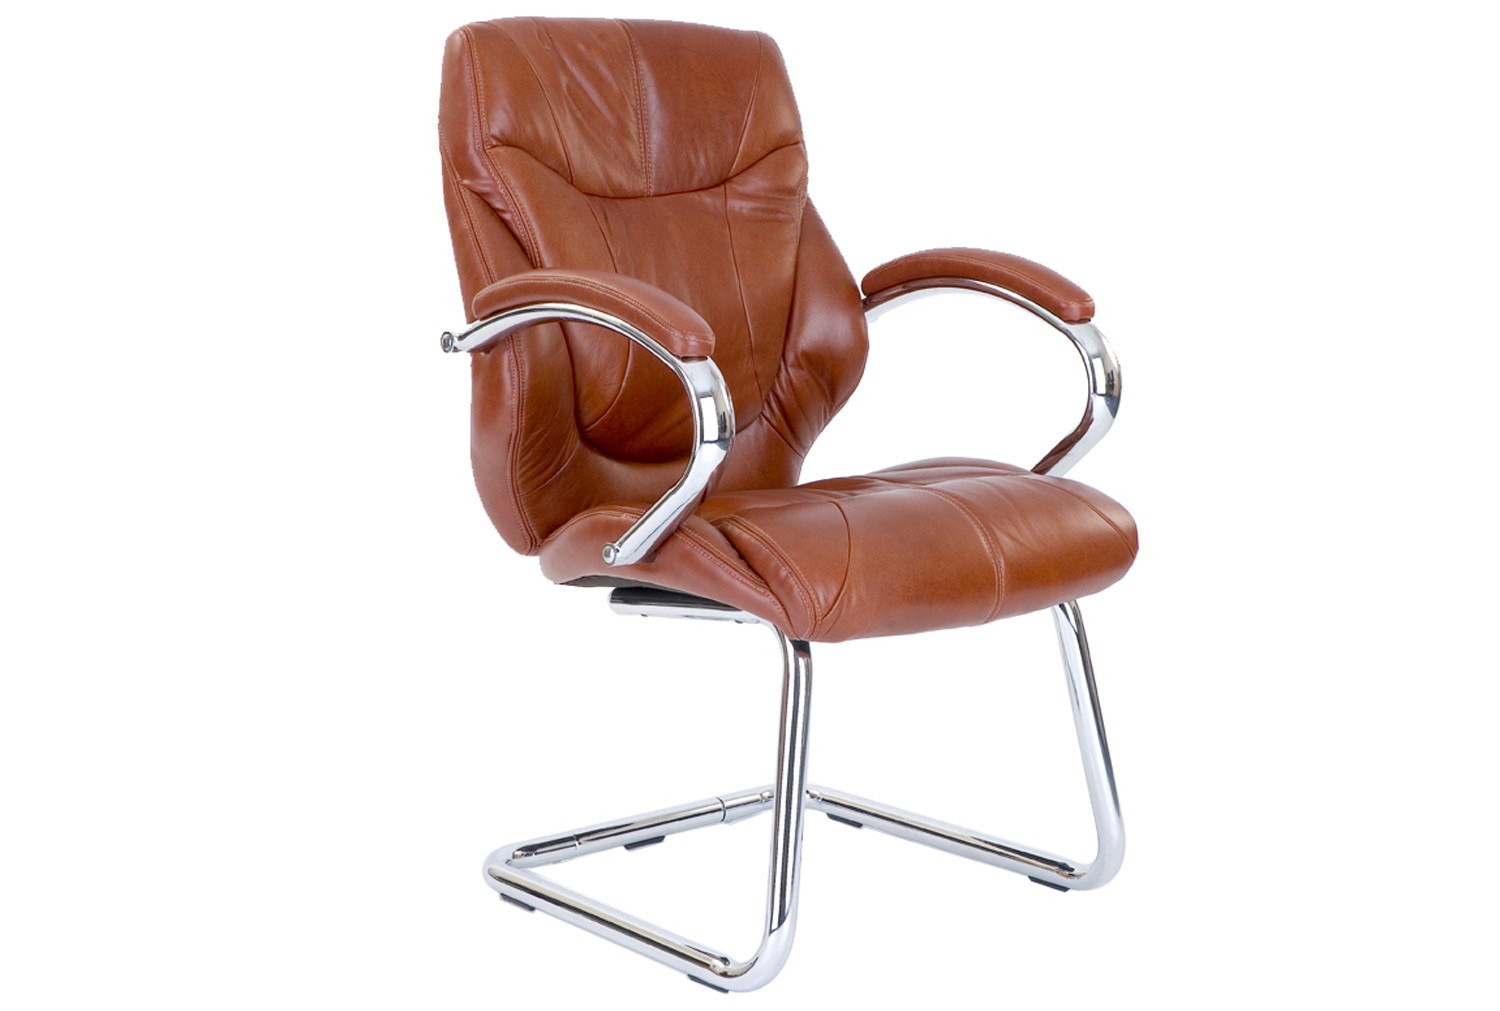 Kintyre Tan Leather Faced Visitor Chair